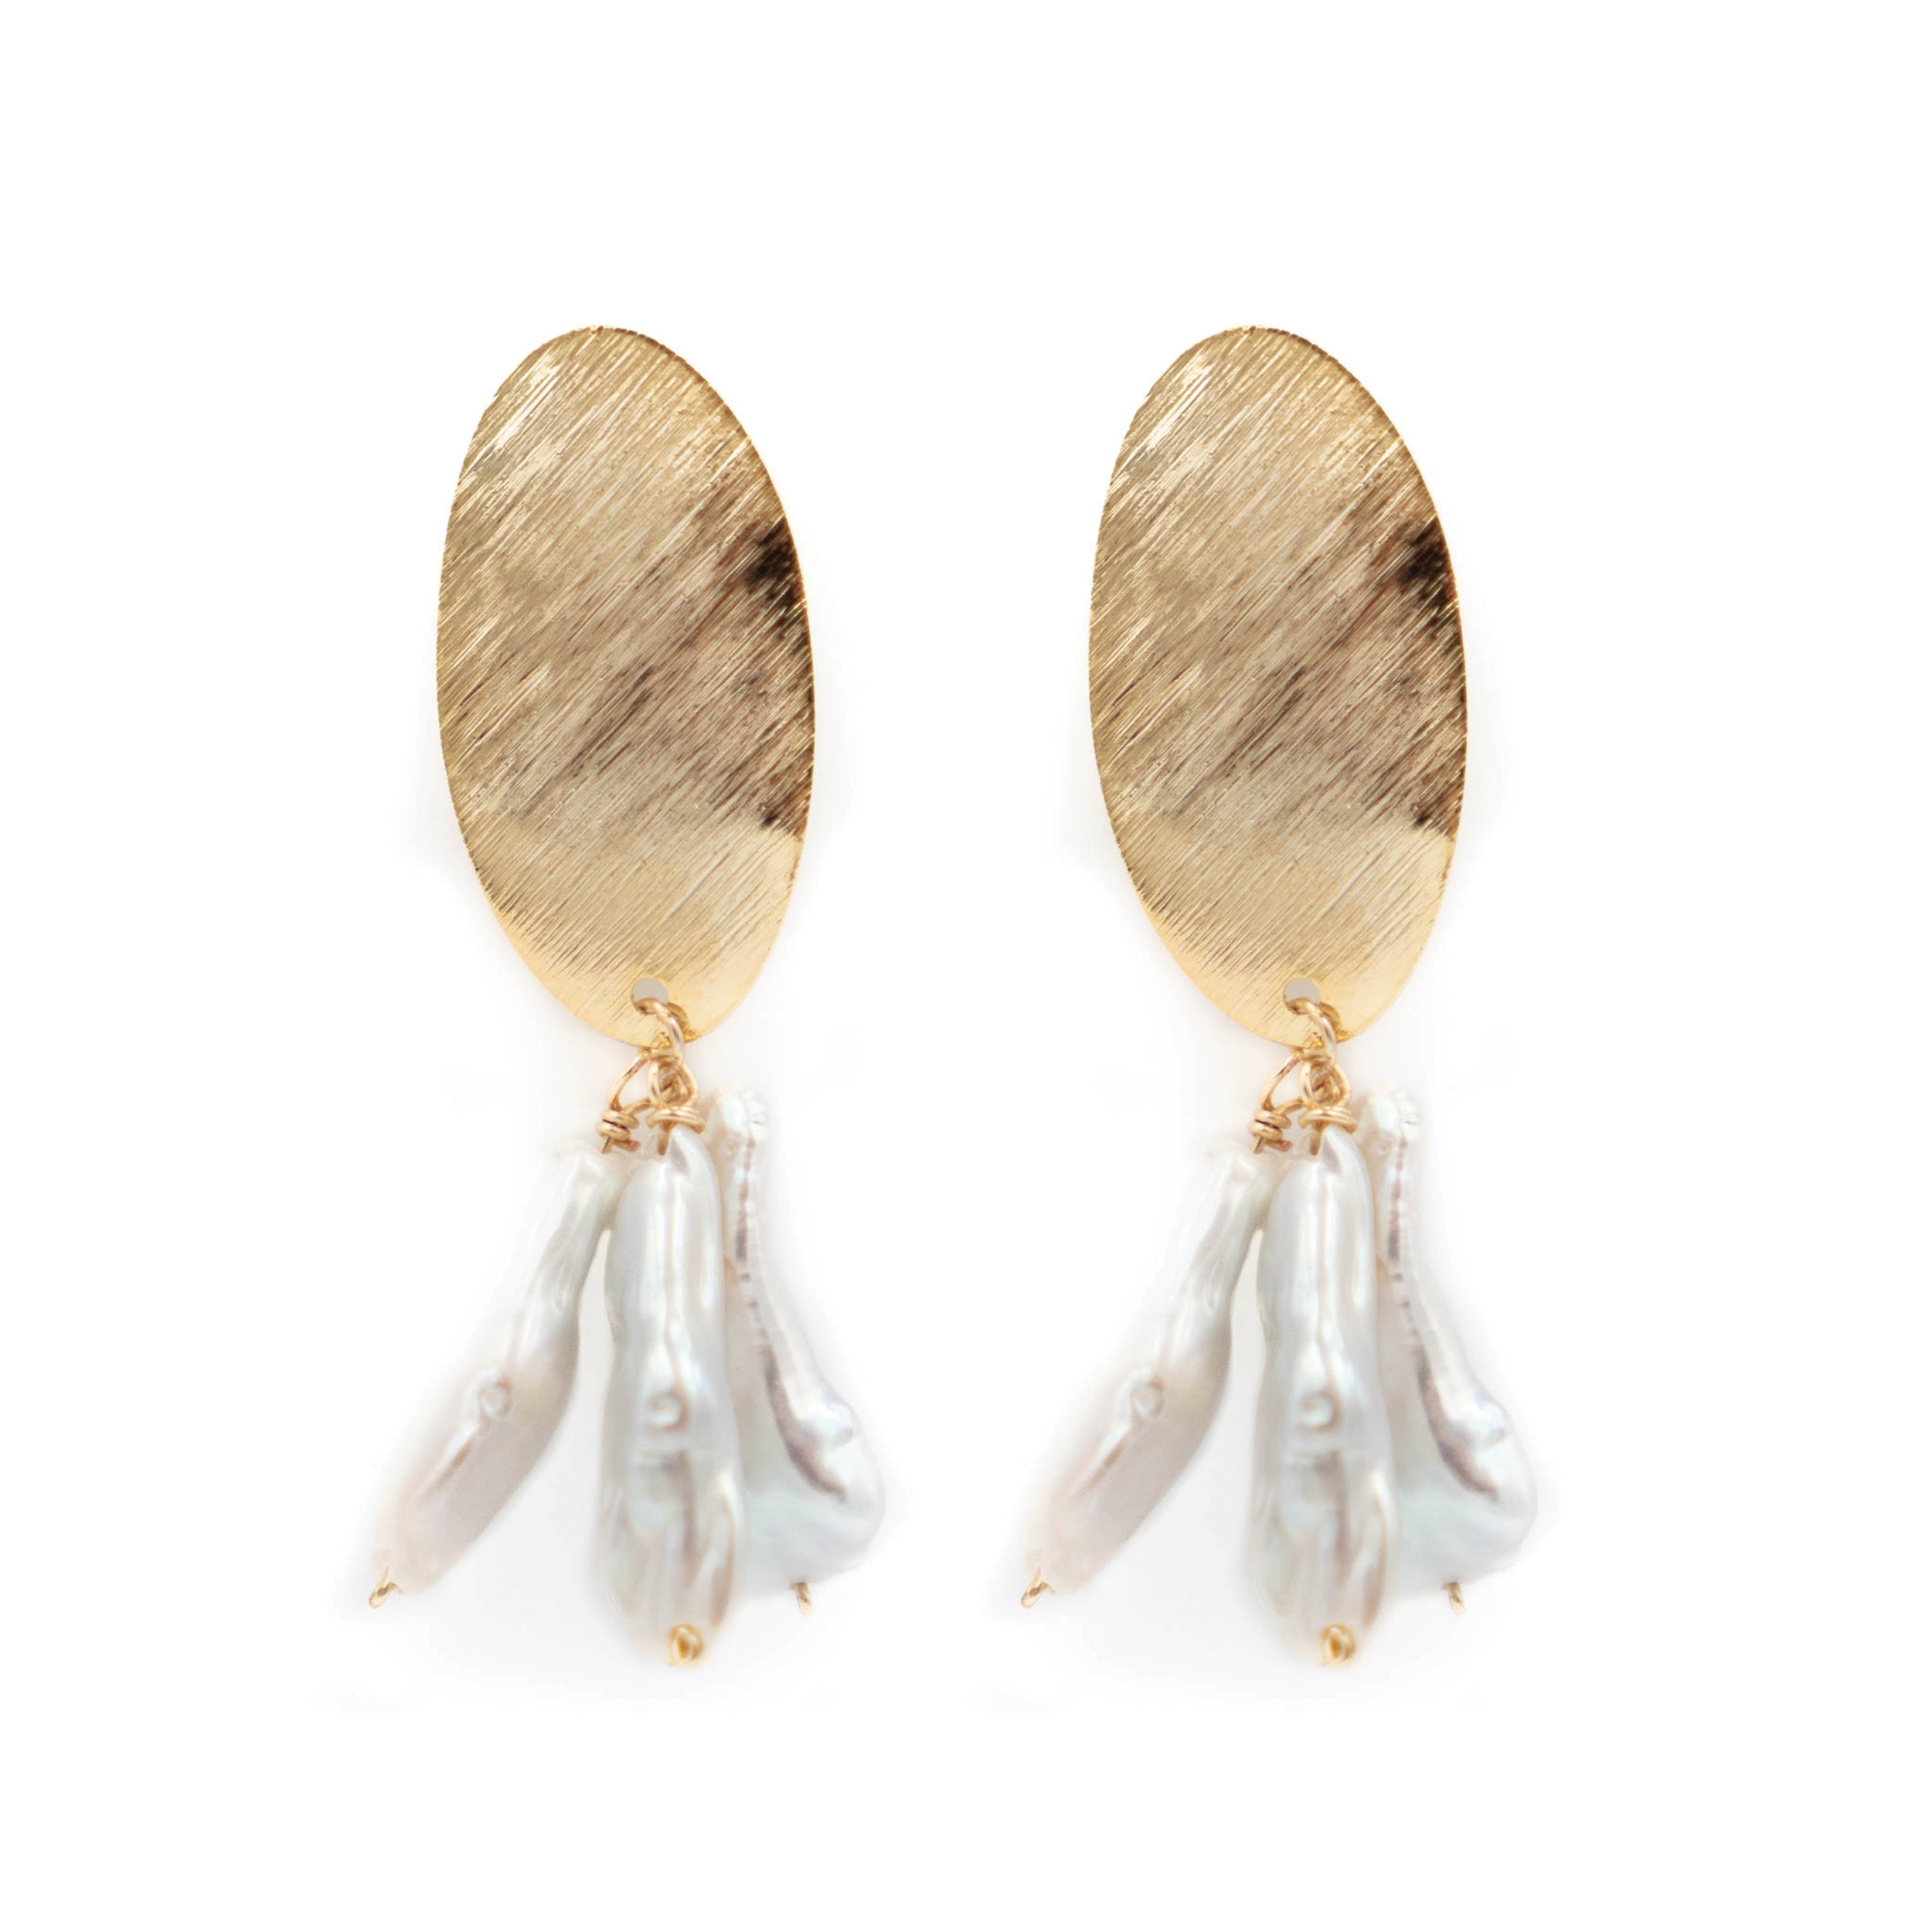 Darby Earring, White Stick Pearl